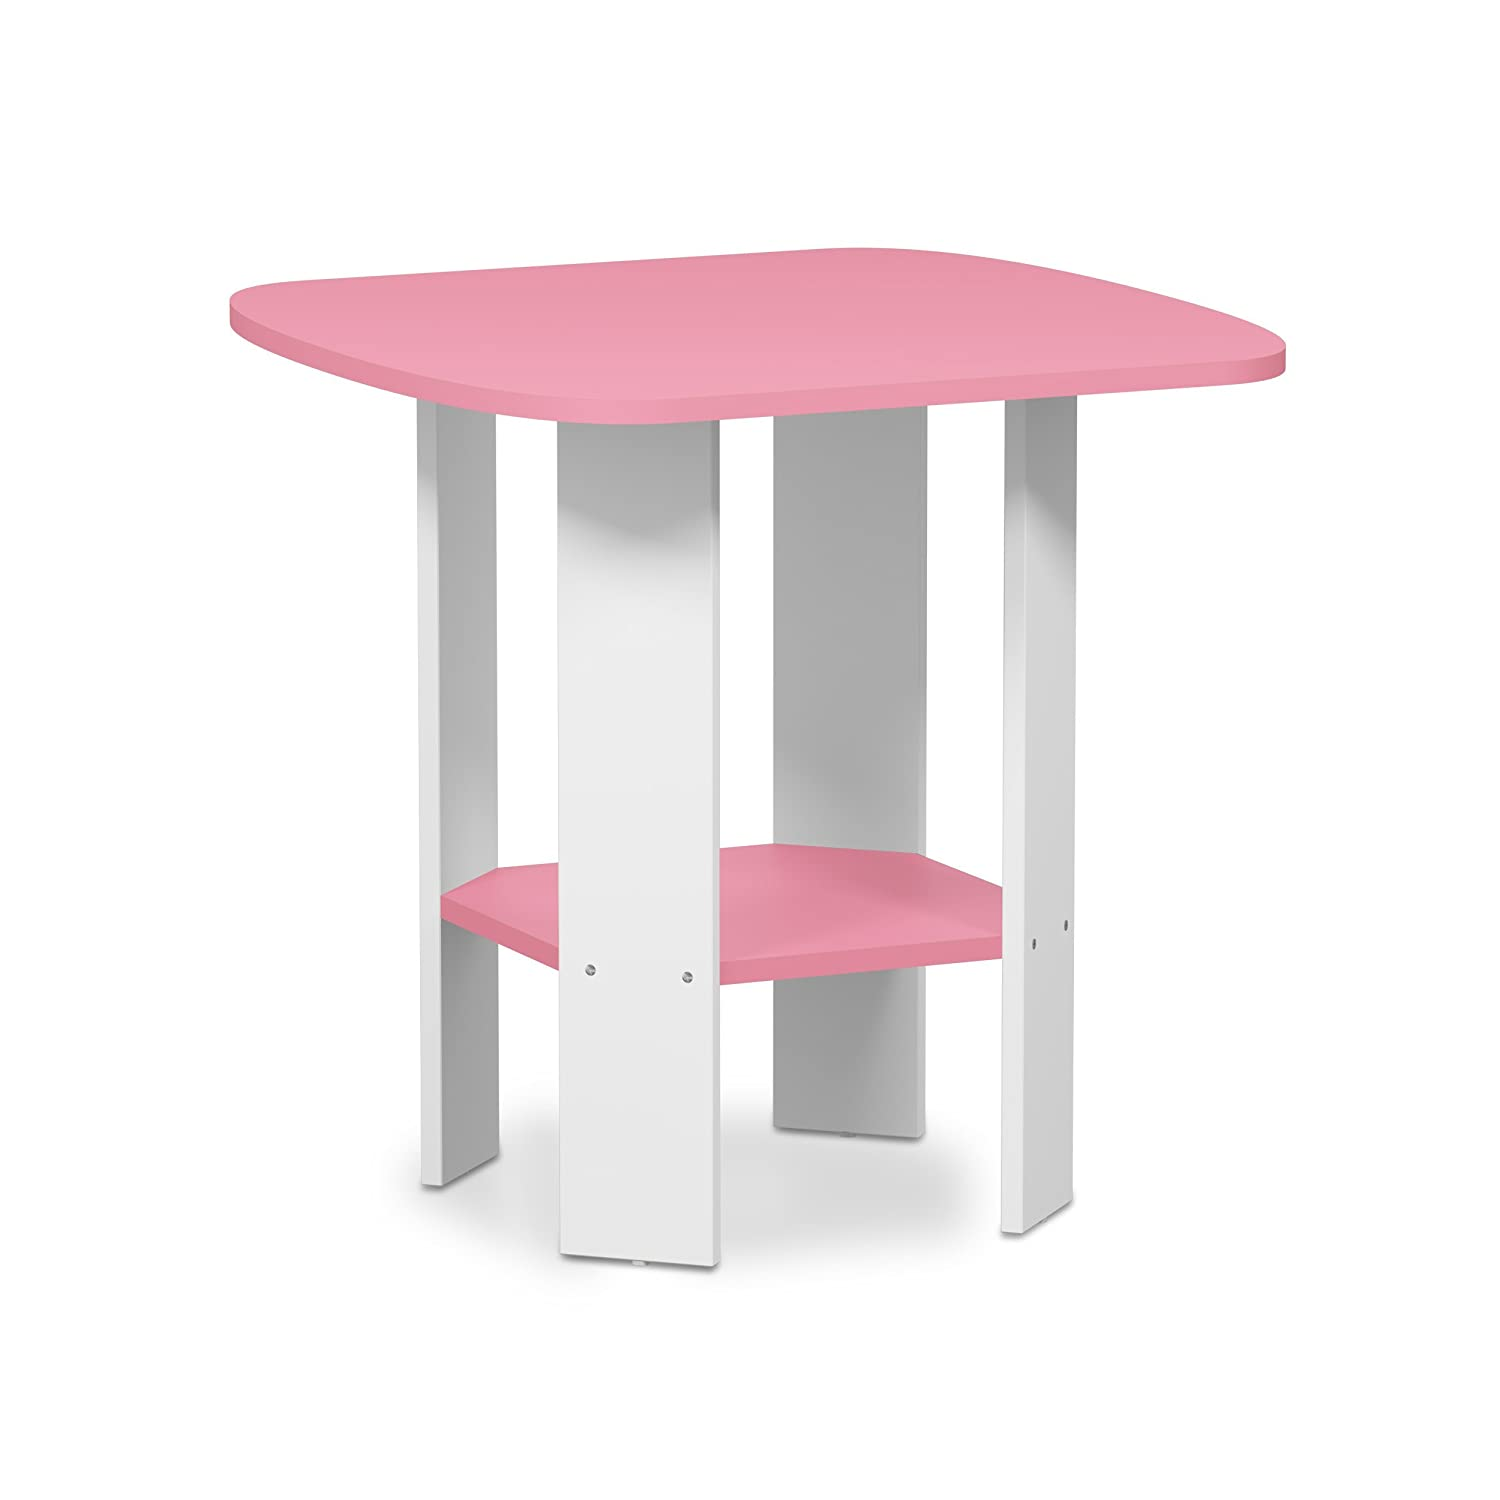 Pink White 1 End Table Furinno 11179DWN Simple Design Coffee Table, Dark Walnut